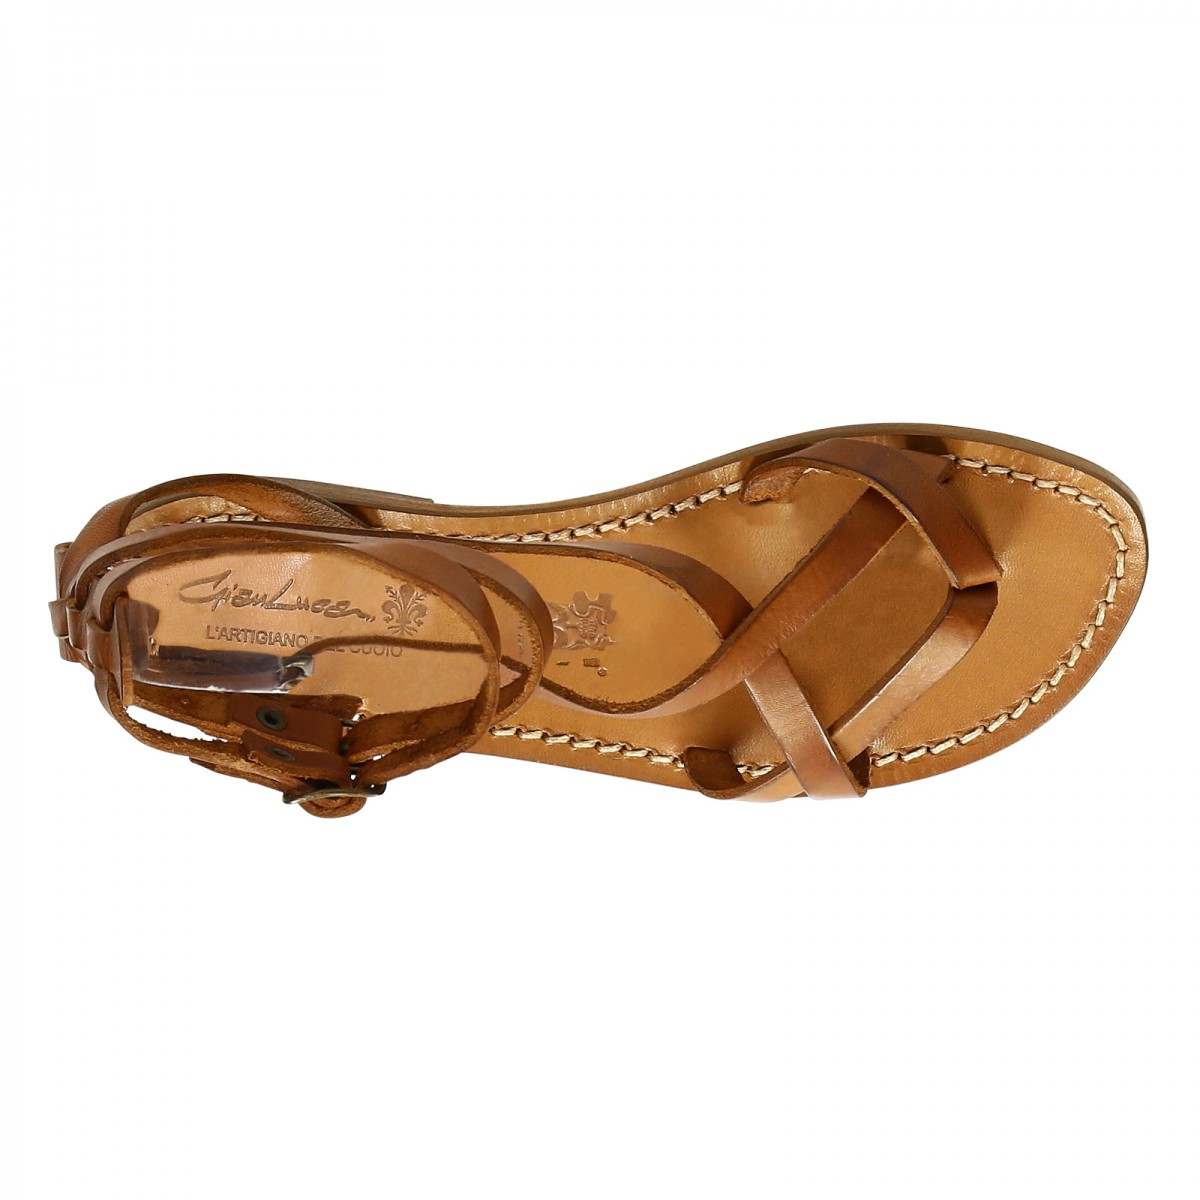 Womens Strappy Leather Sandals Handmade In Italy In -5114